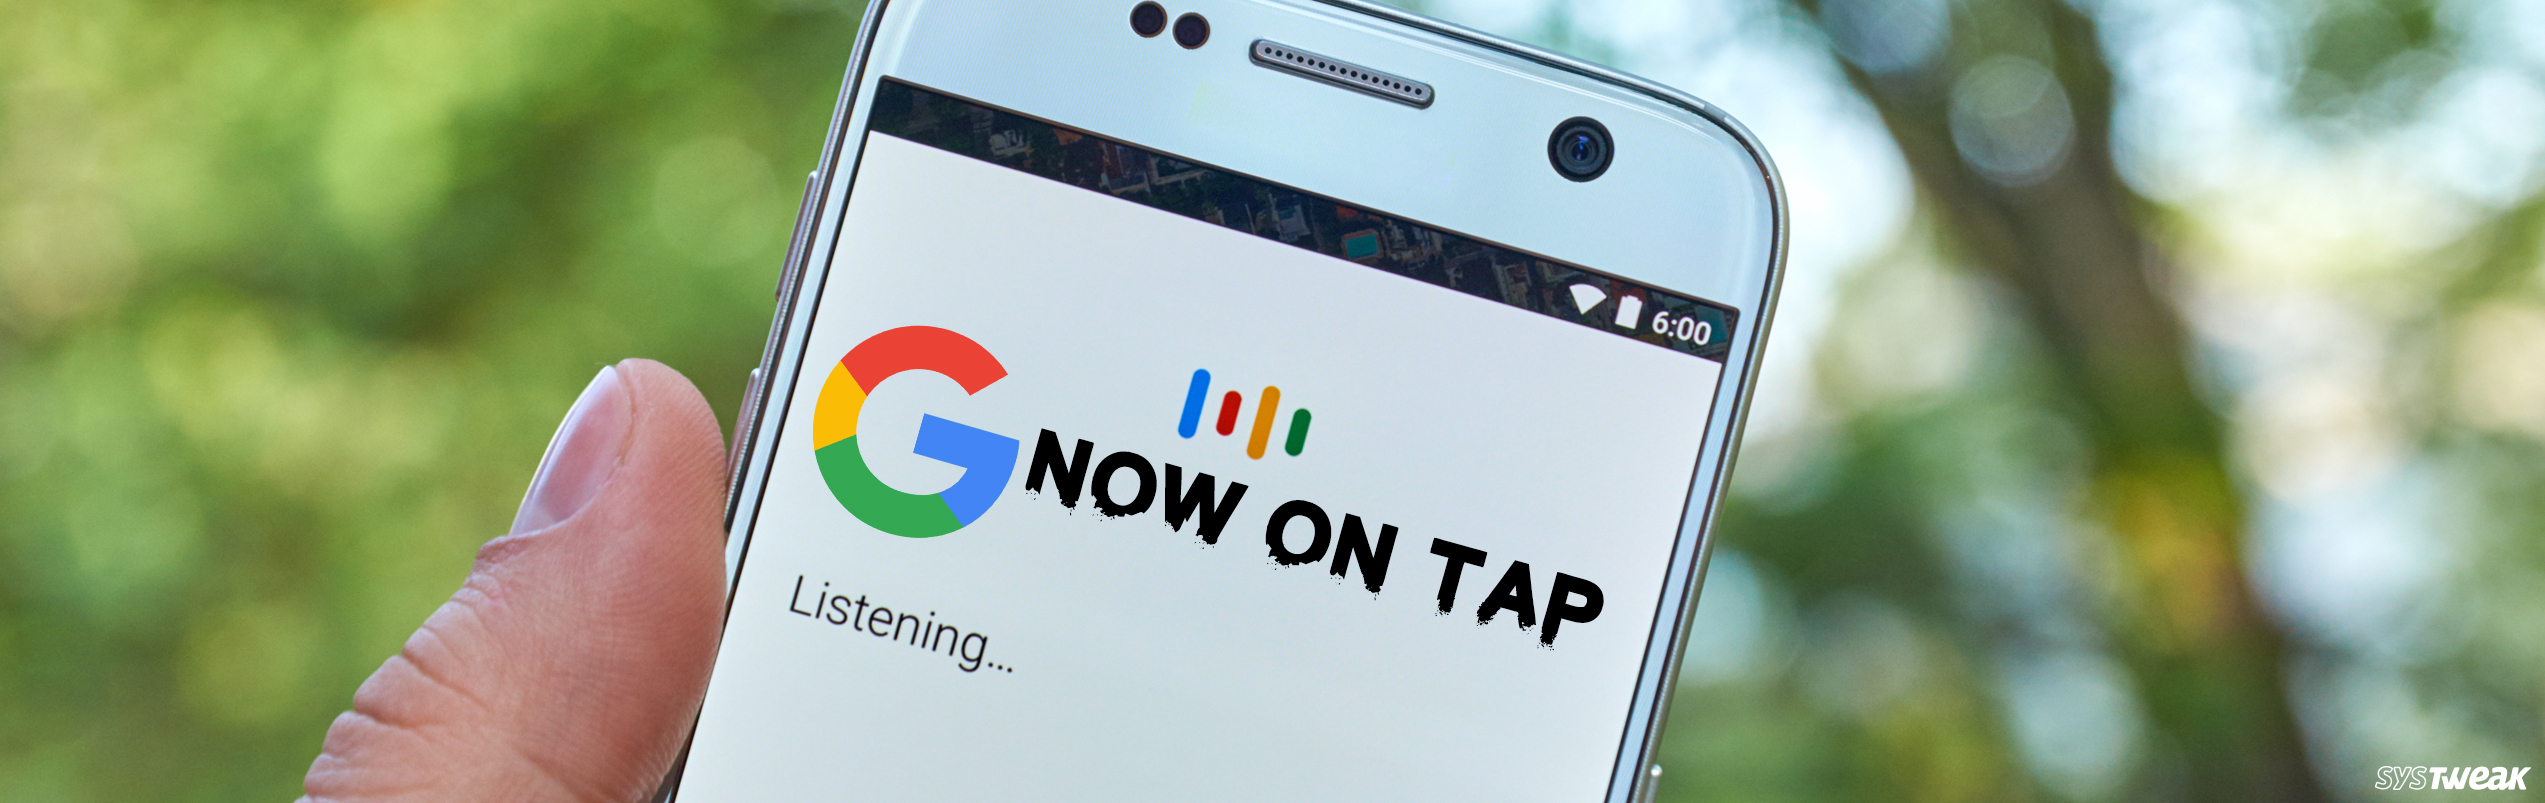 How To Use Google Now on Tap On Android